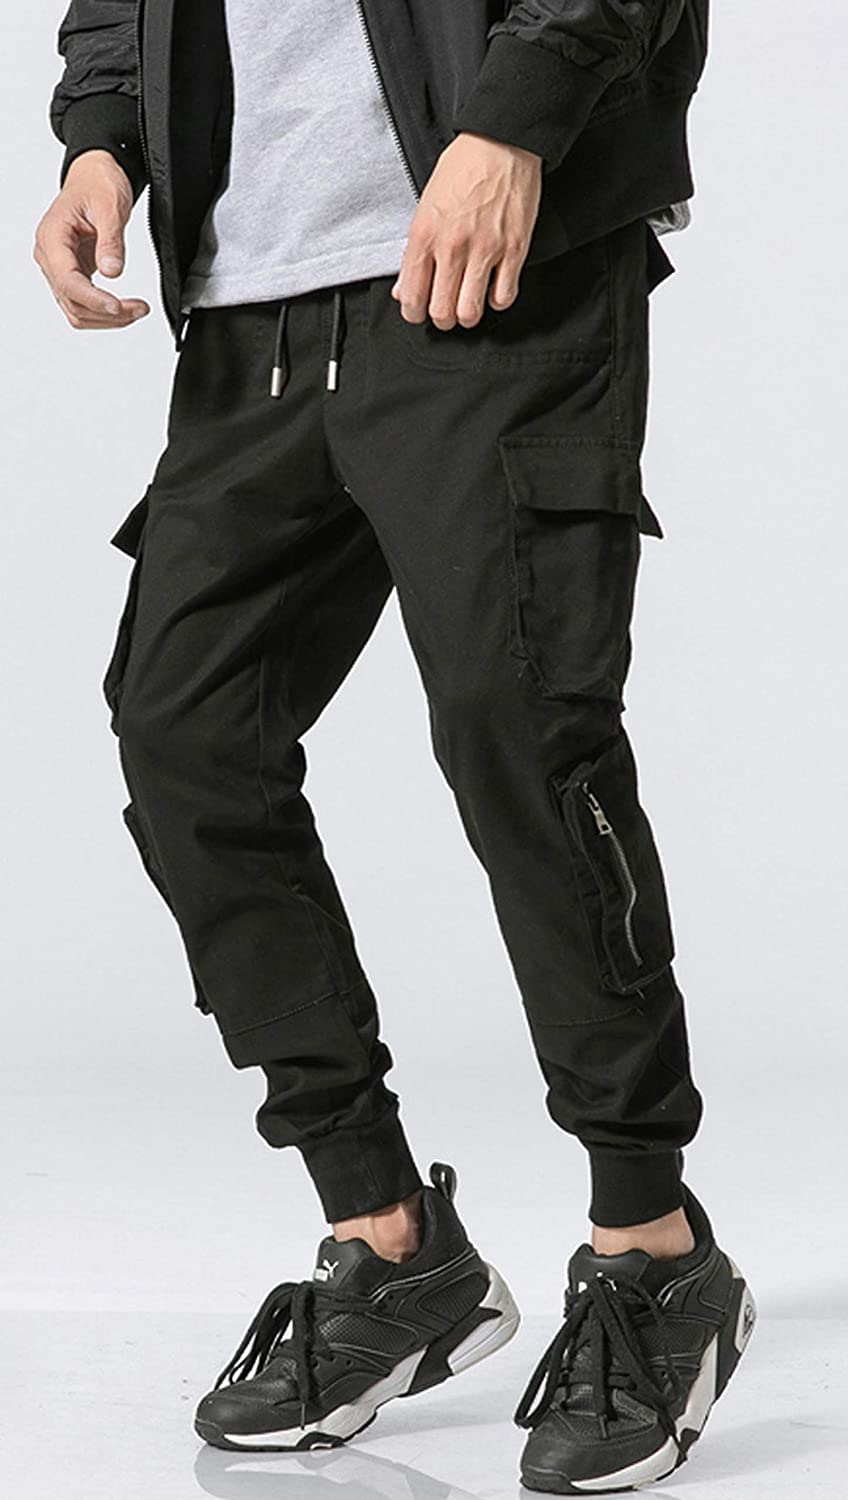 cad96ca50743 MOKEWEN Men's Multi Cargo Zipper Pocket Tactics Jogger Harem Pants with  Elastic Waist W32-33 at Amazon Men's Clothing store: